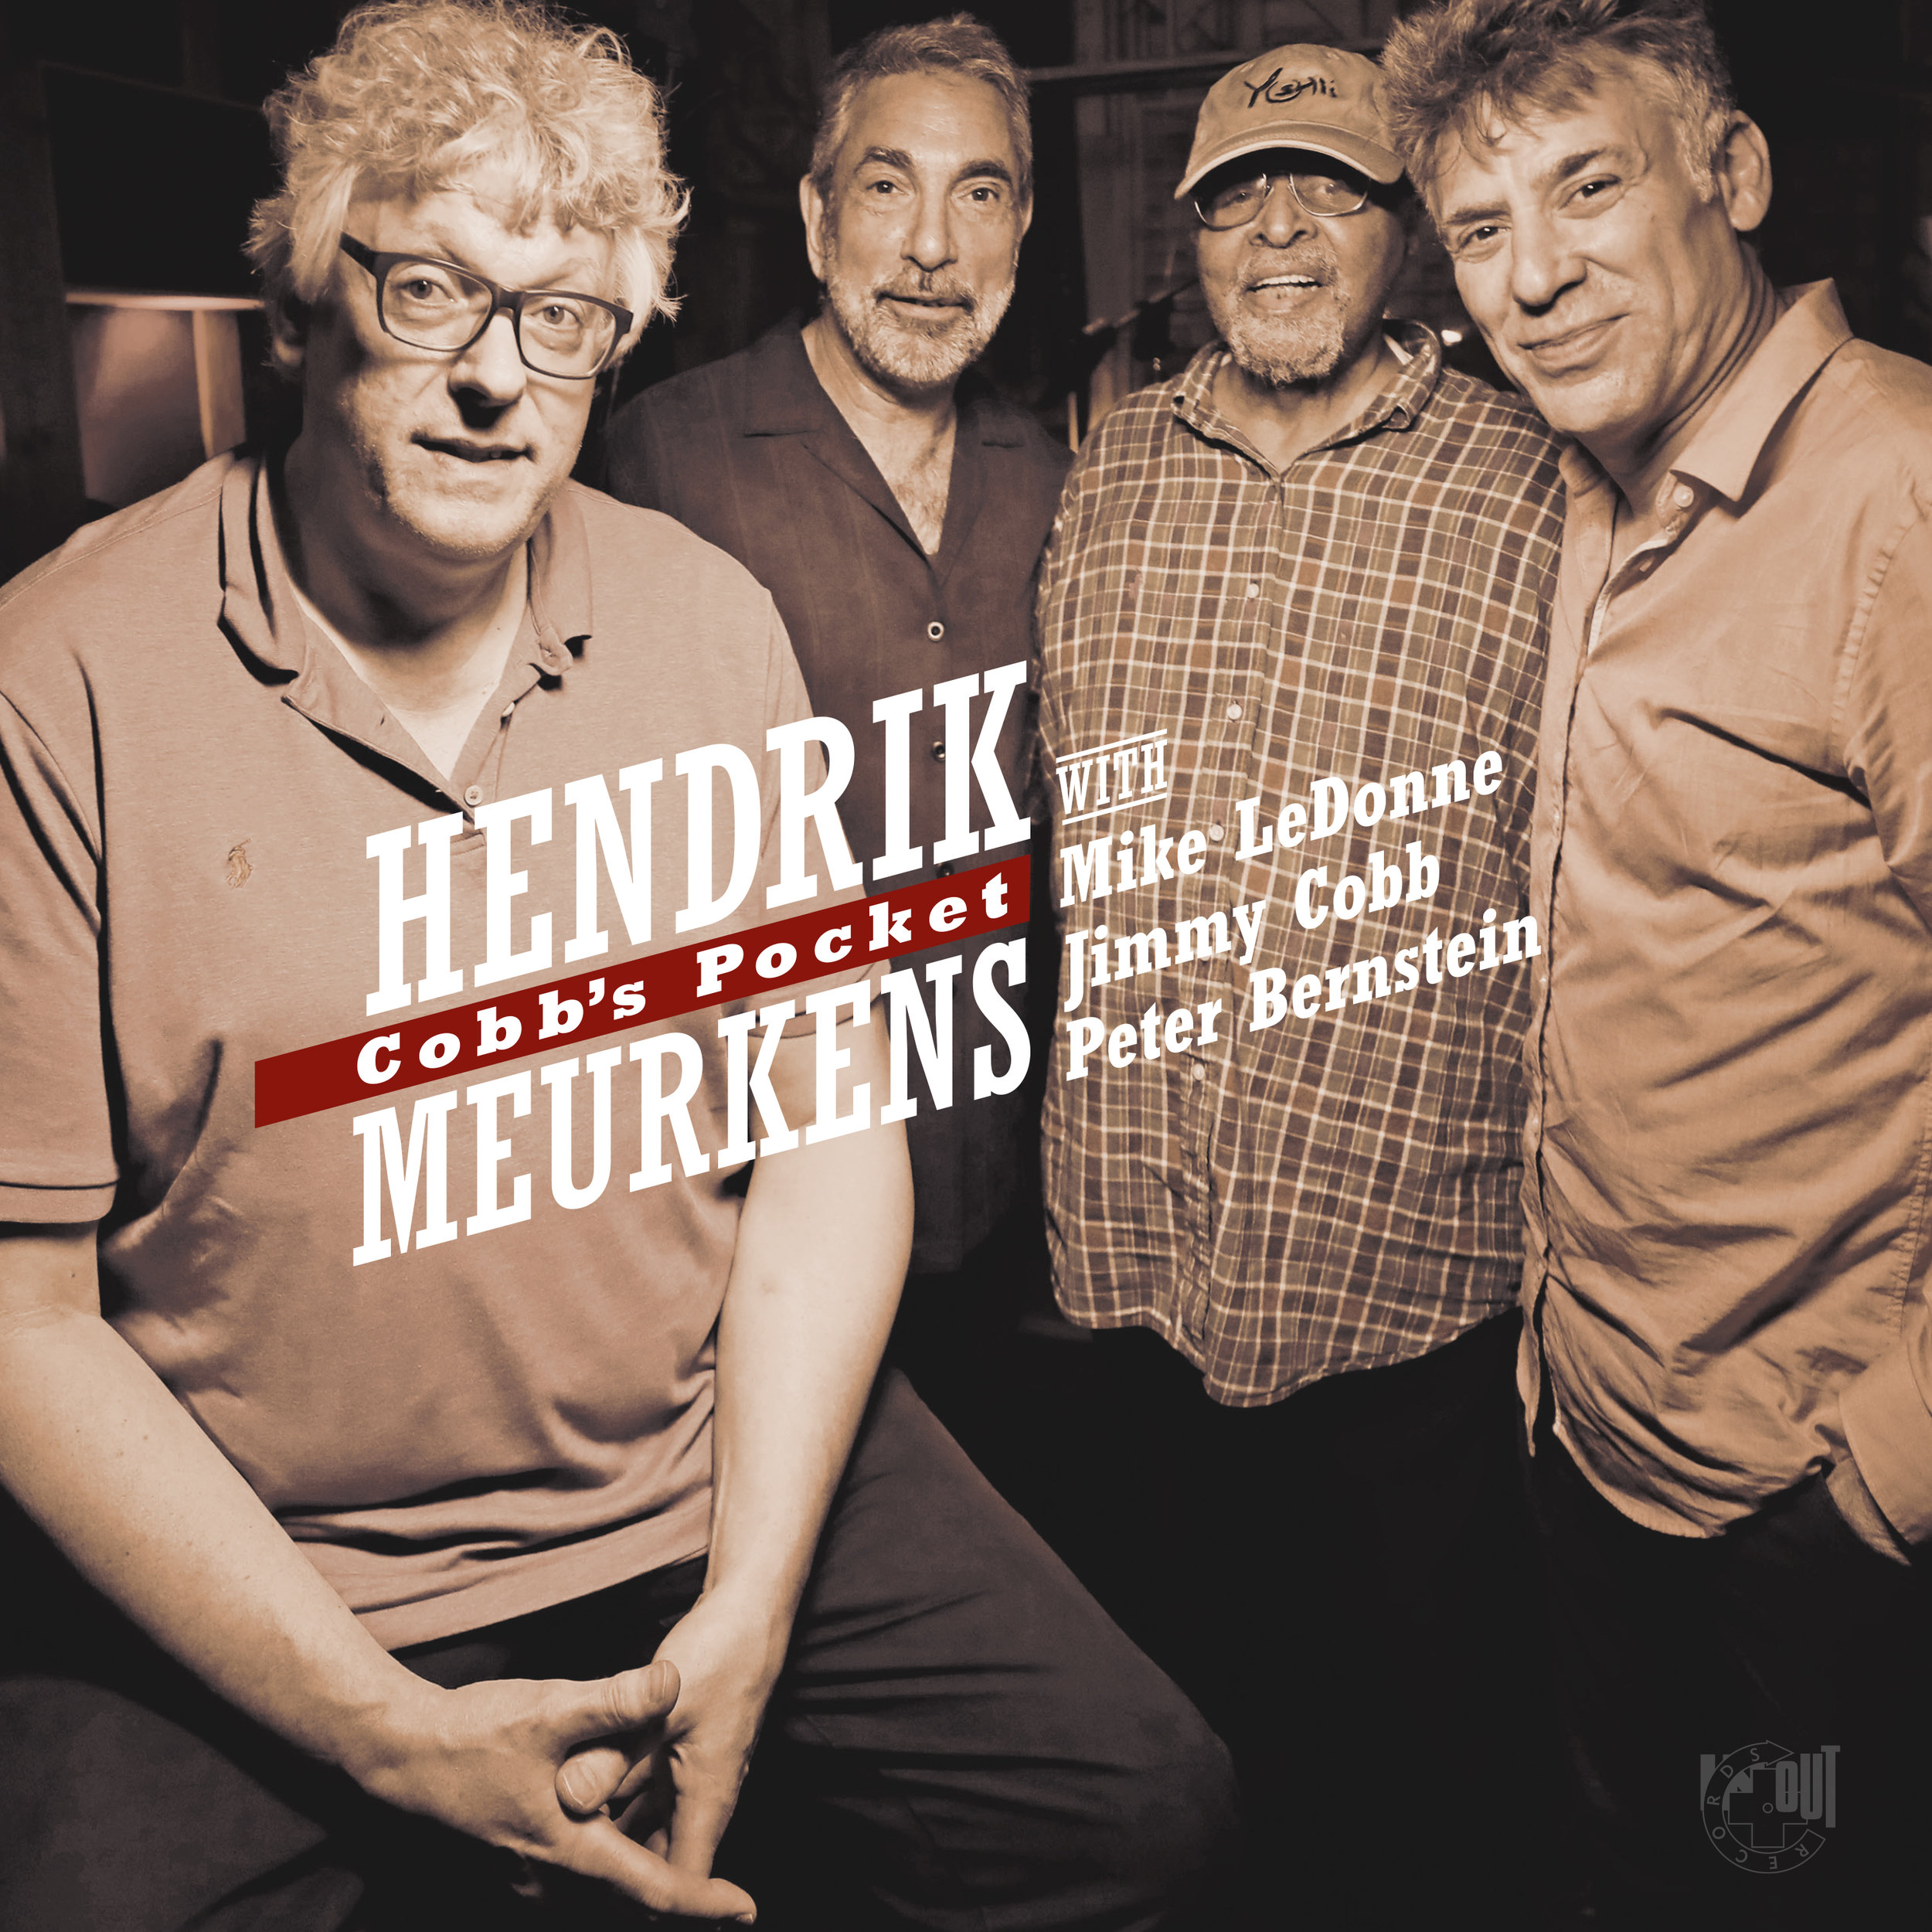 Cobb's Pocket - After 27 releases as a leader, many within the Brazilian jazz vein, harmonica player Hendrik Meurkens releases his first album with an organ trio.Meeting up with New York' finest players: Mike LeDonne on organ, Peter Bernstein on guitar and the legendary Jimmy Cobb on drums - this album represents classic organ jazz its finest.Hendrik Meurkens - HarmonicaMike LeDonne - Hammond B3Jimmy Cobb - DrumsPeter Bernstein - Guitar